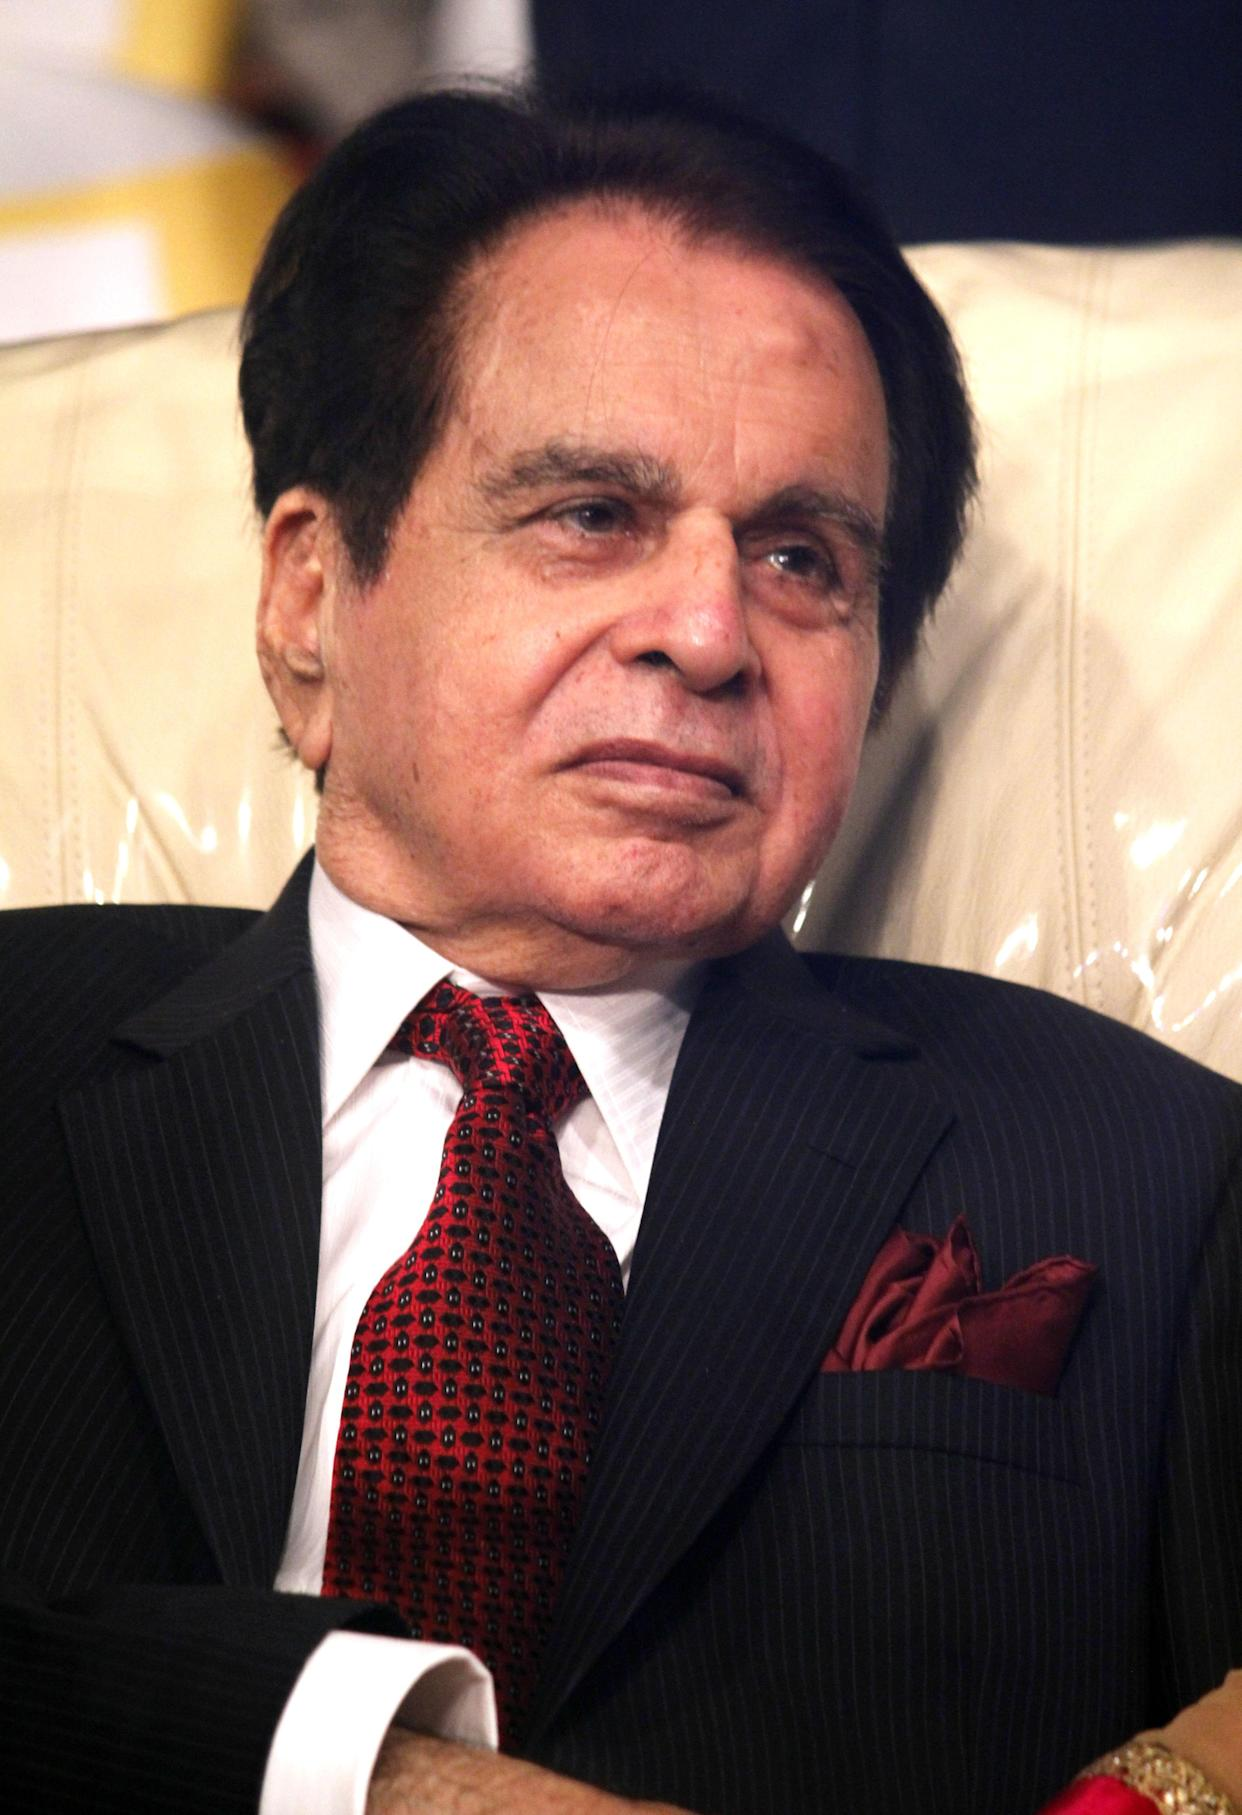 Dilip Kumar's successful career spanned five decades. (Photo credit should read STRDEL/AFP via Getty Images)